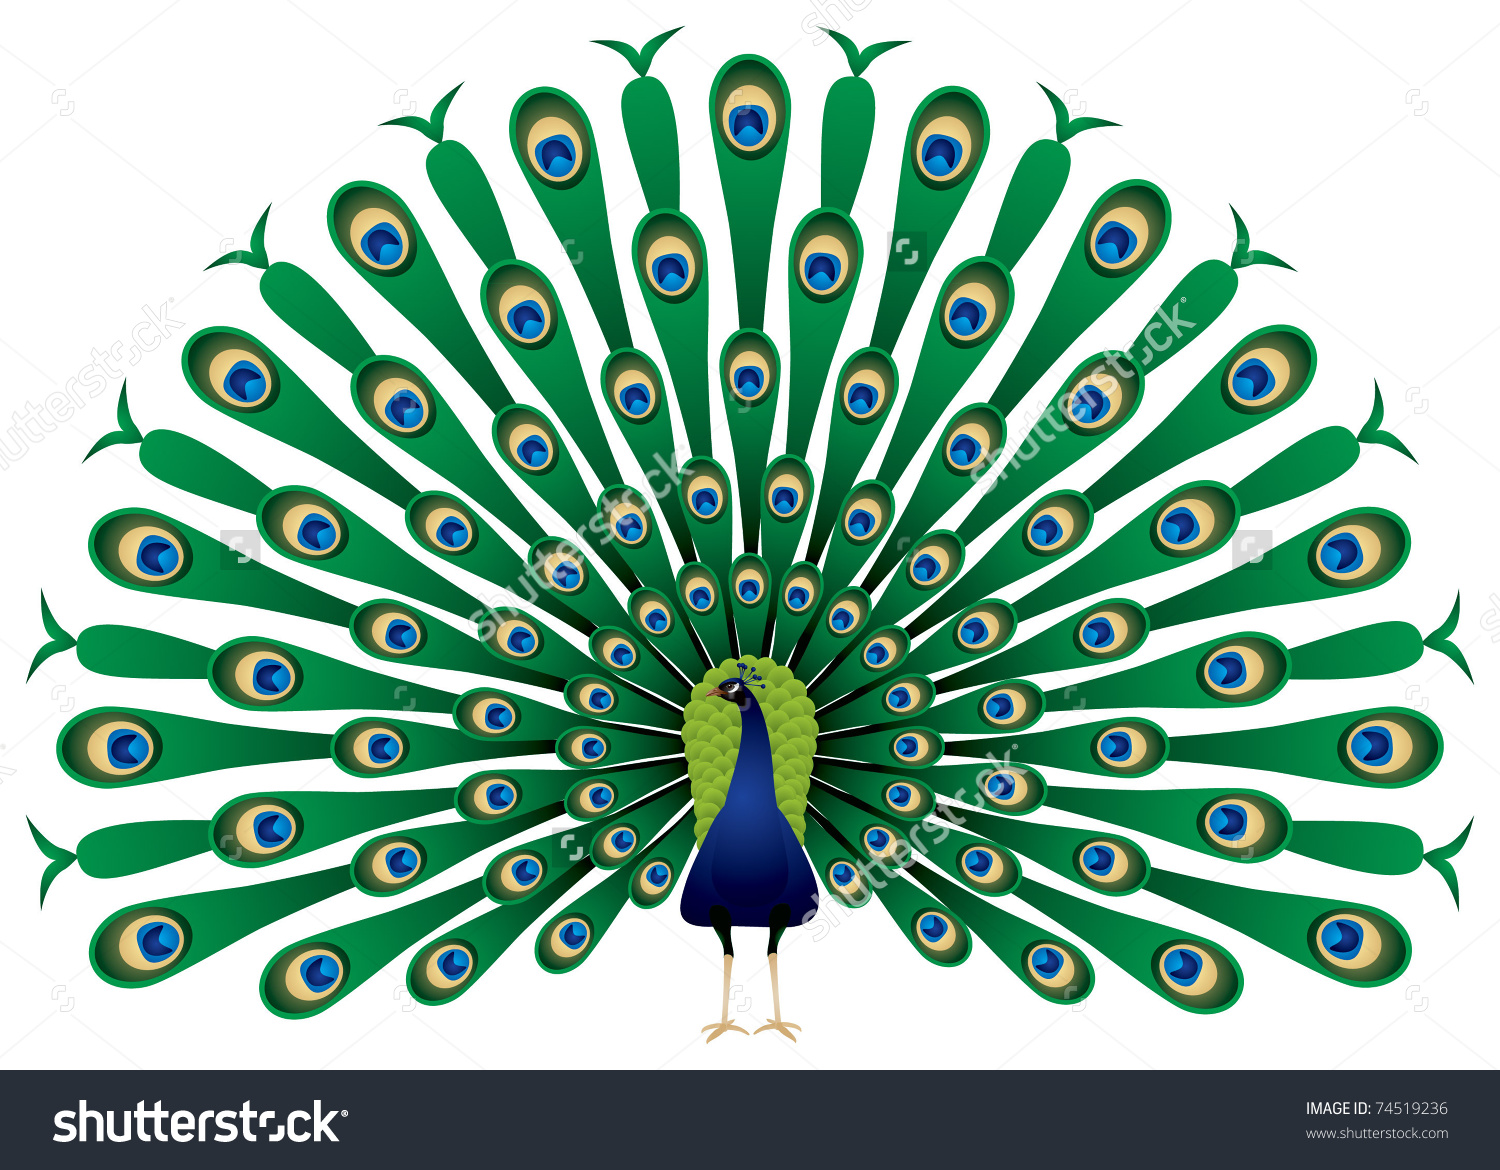 Indian Peafowl clipart #2, Download drawings